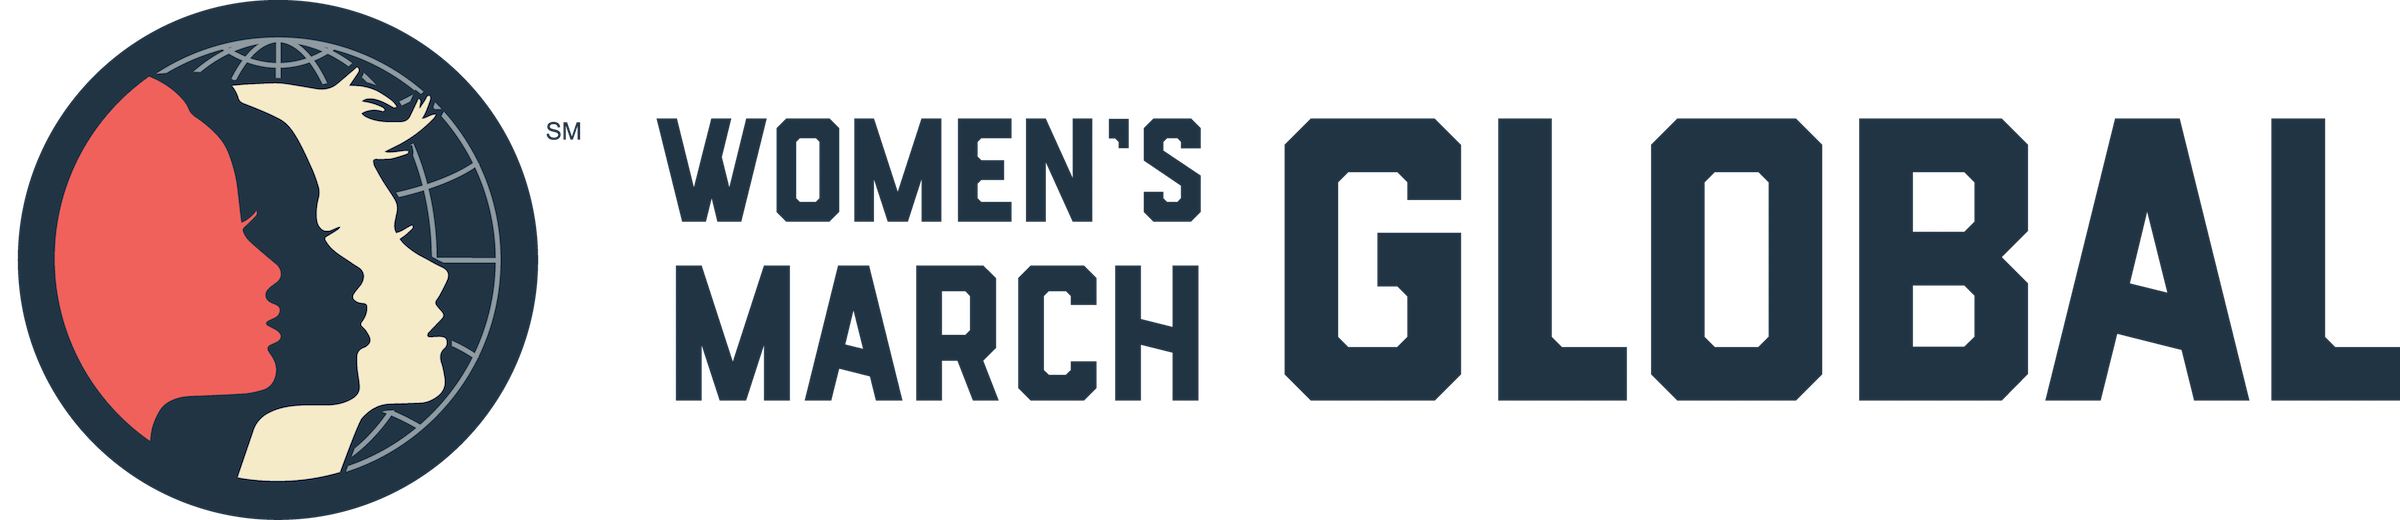 16 Days of Global | Women's March Global